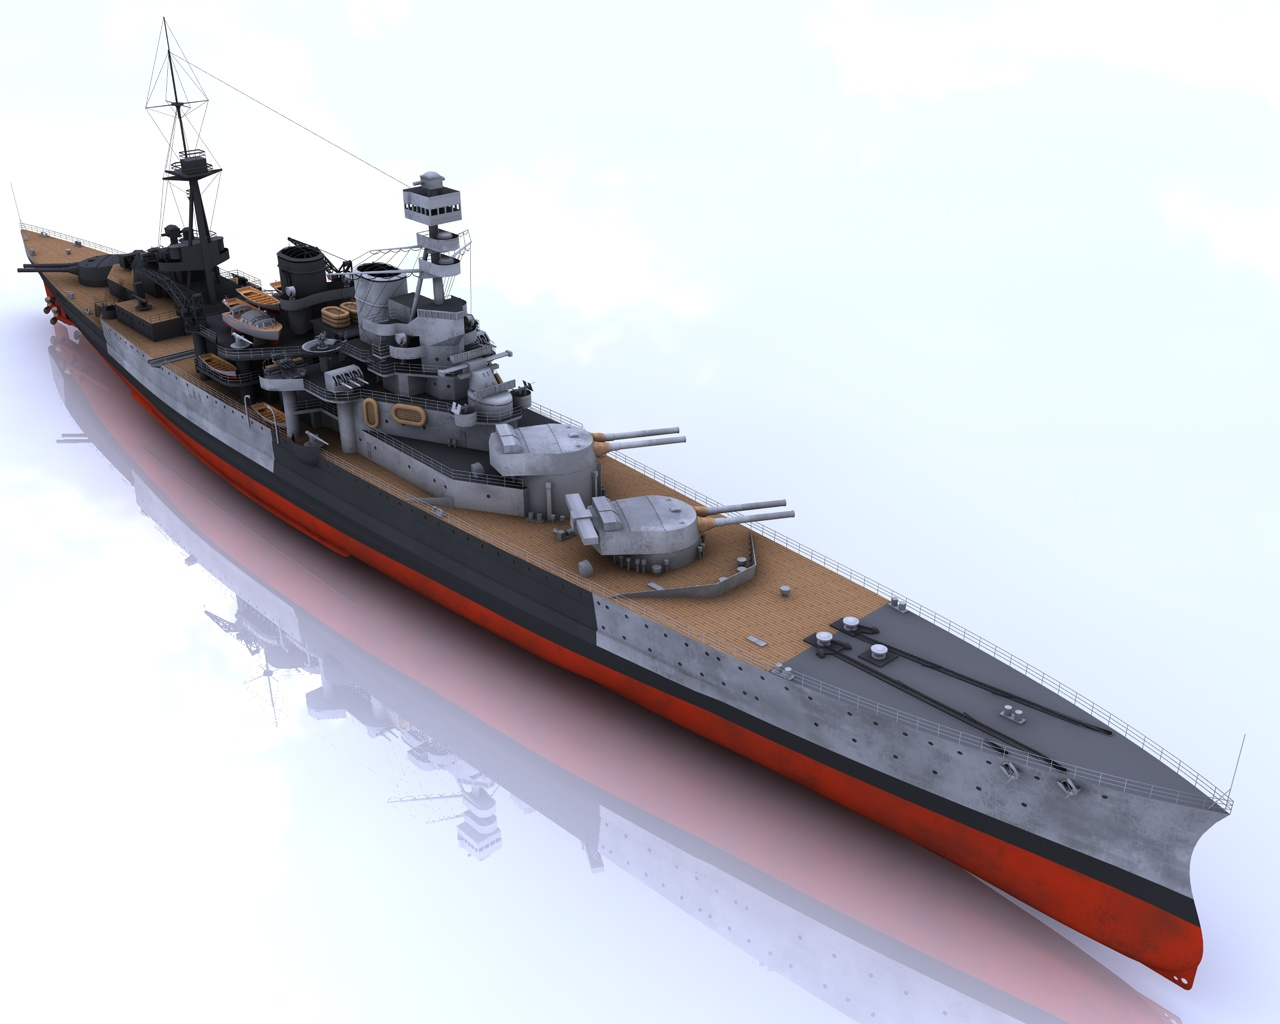 H.M.S. Repulse now Available